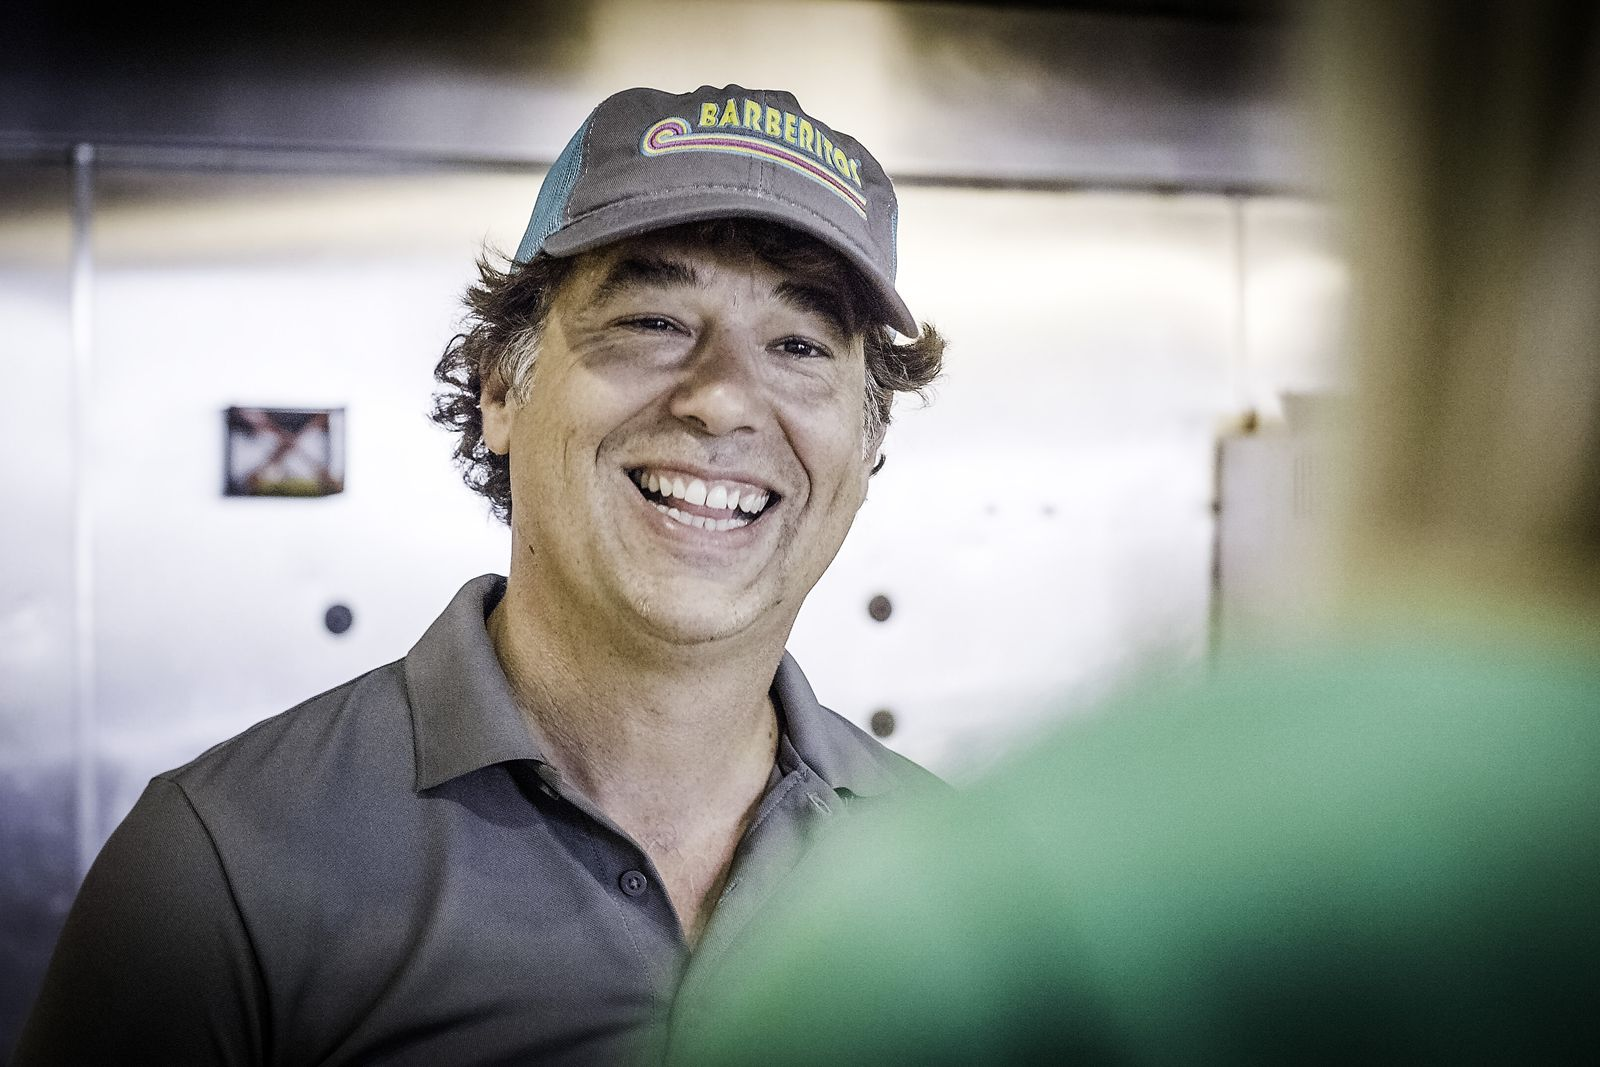 Barberitos Founder Explains Why NOW is the Best Time to Purchase a Franchise